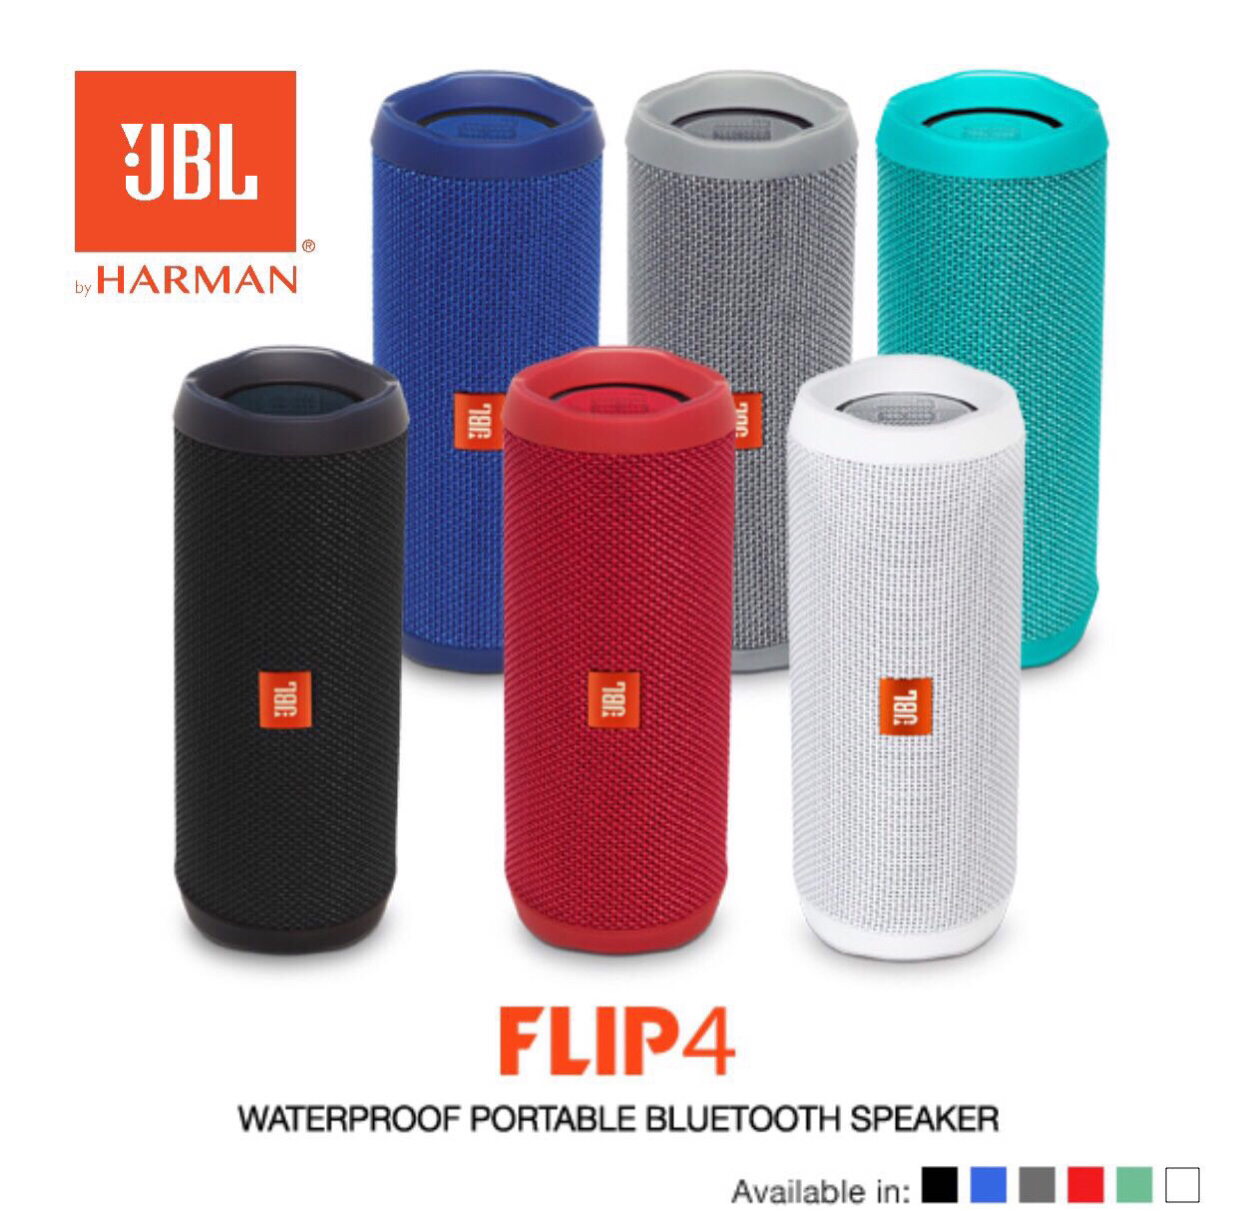 JBL FLIP 4 - Waterproof Portable Bluetooth Speaker